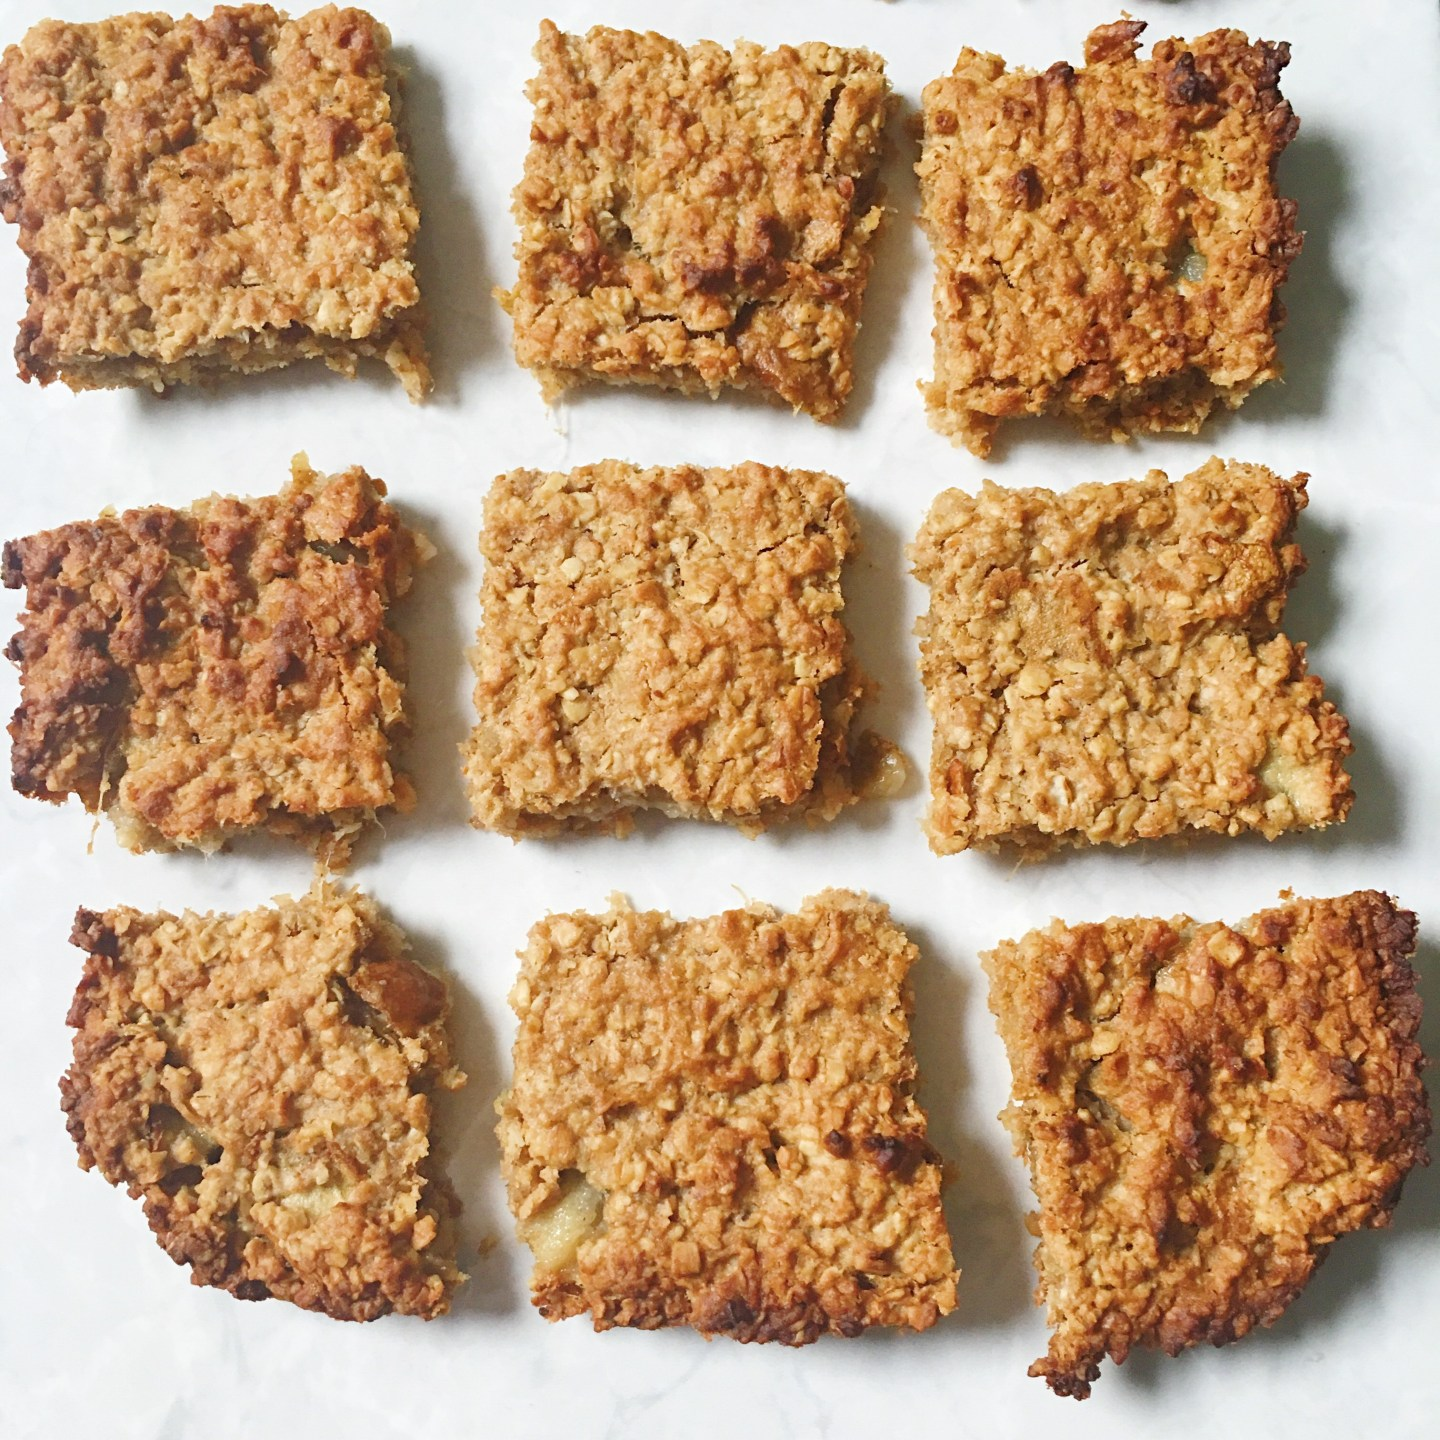 Pear and Ginger Oat Bars